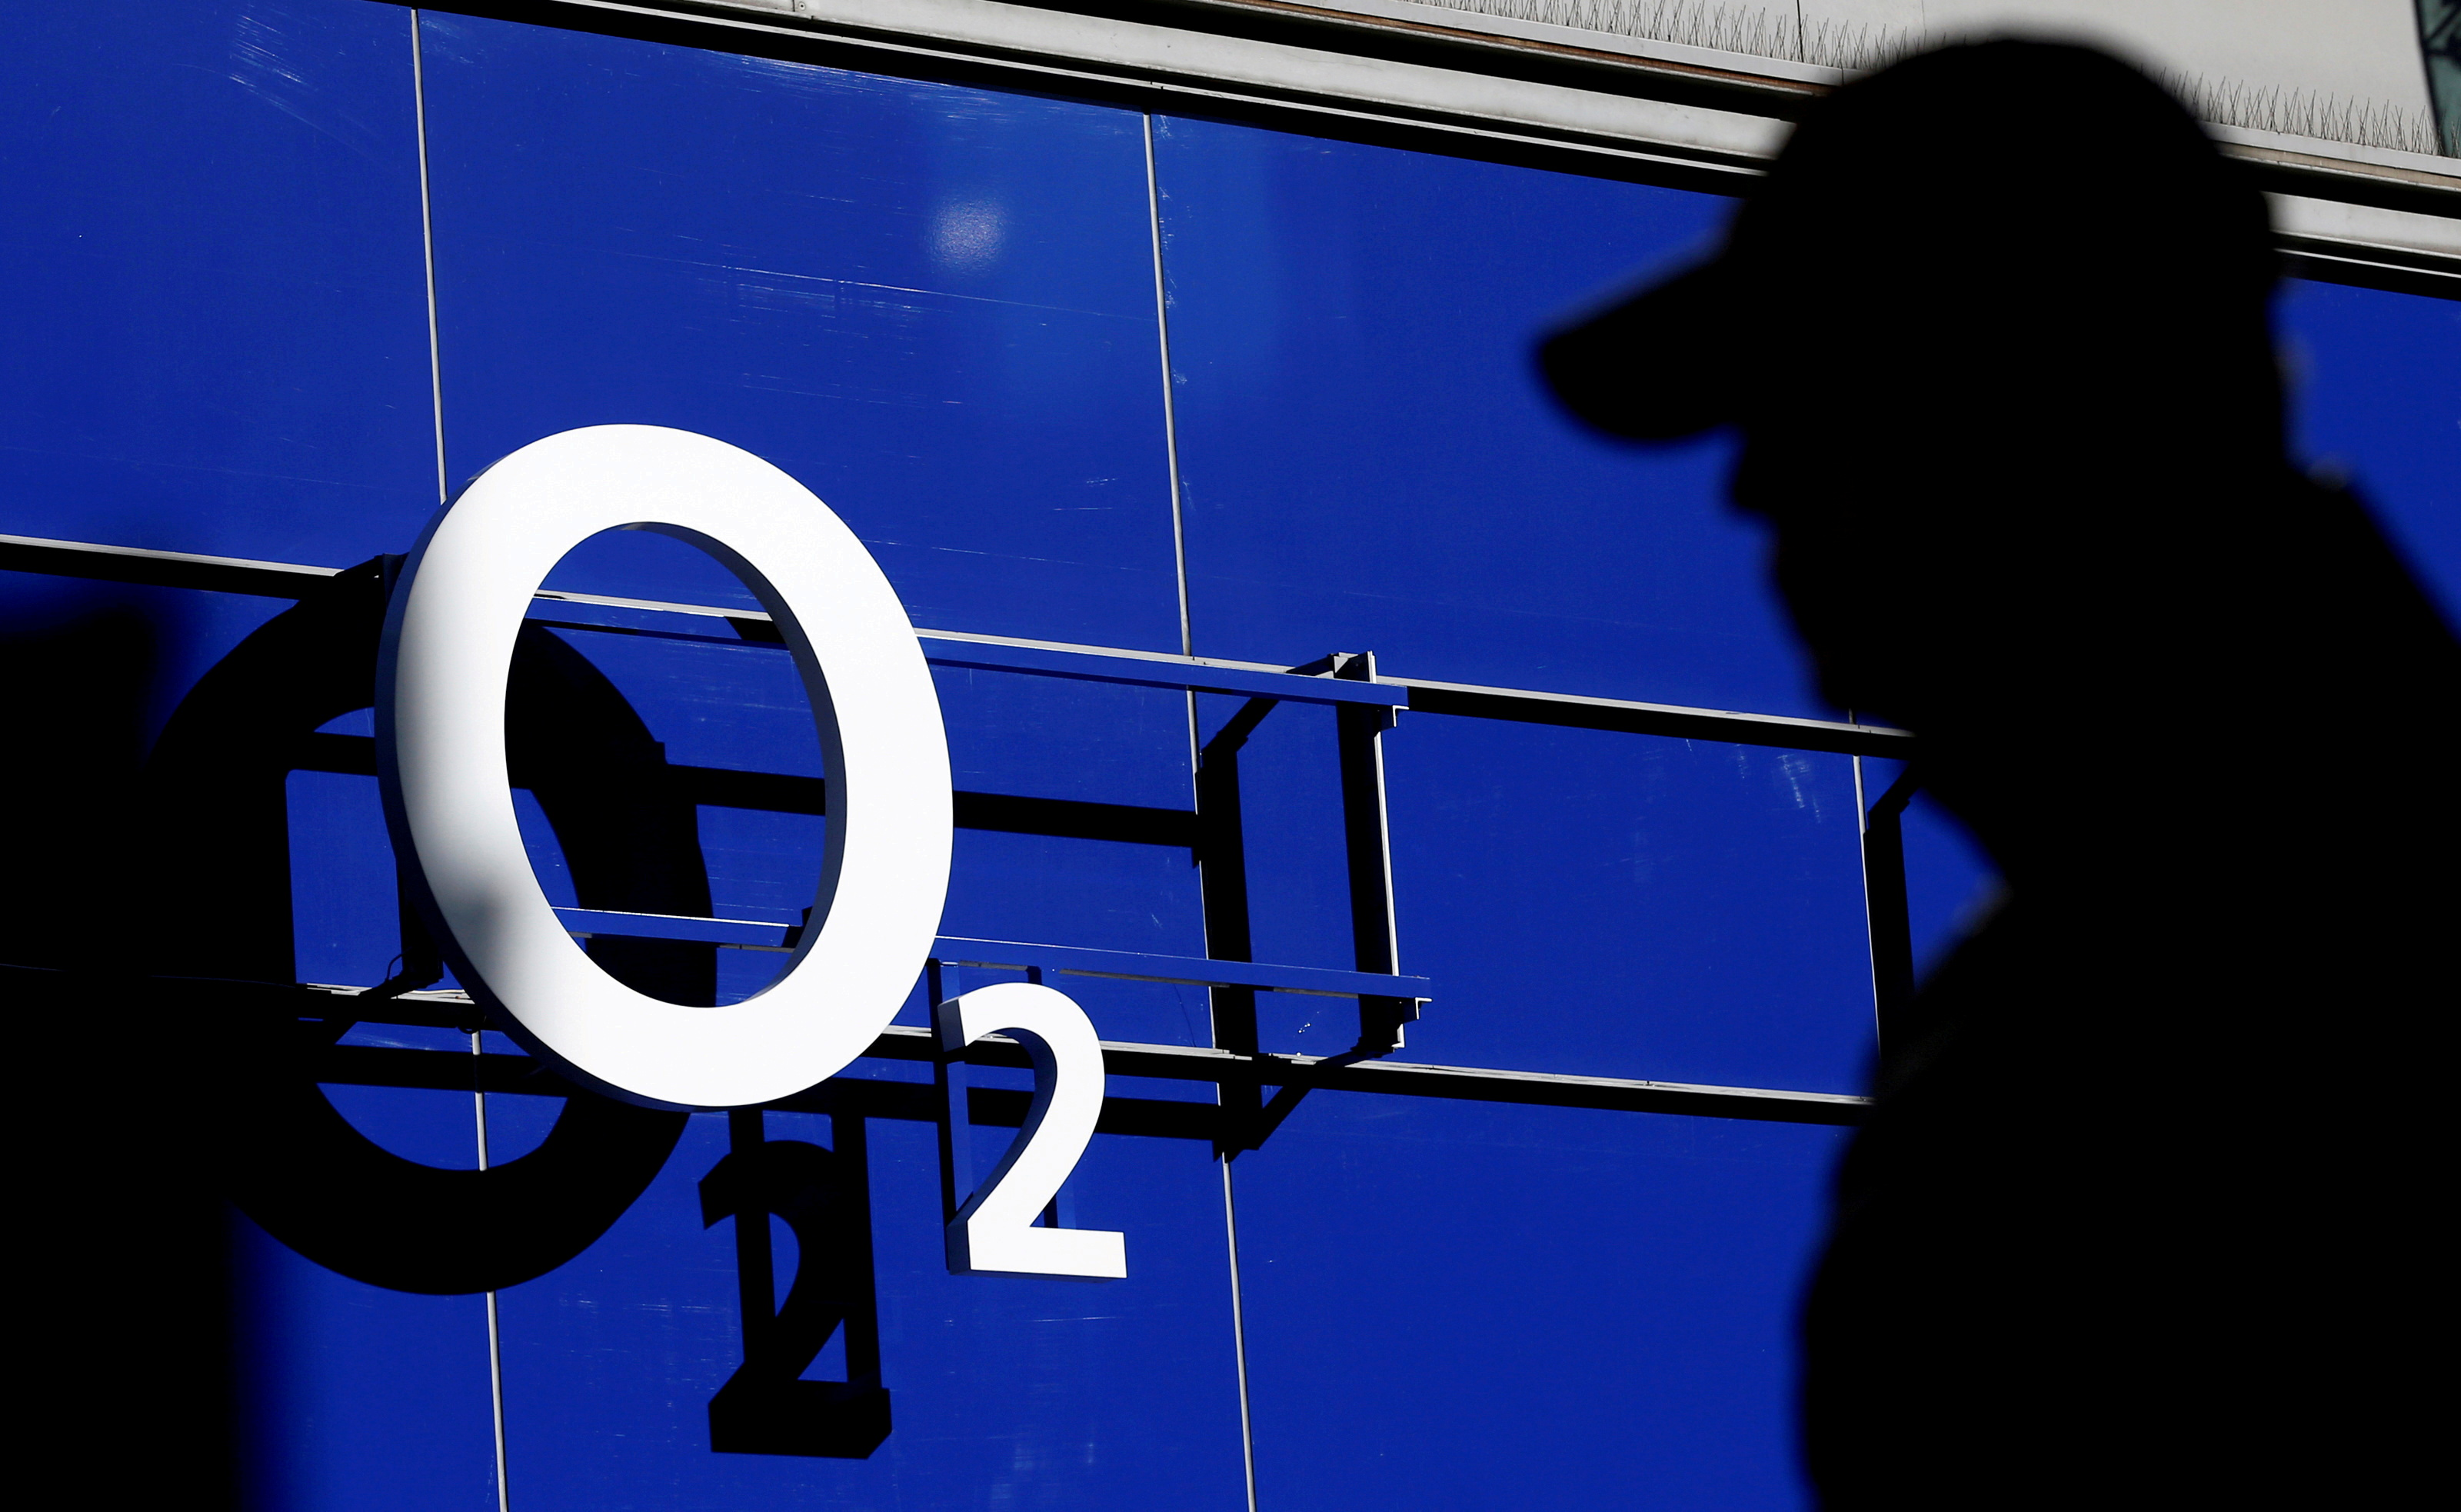 A man walks past an O2 phone store in Manchester, Britain March 7, 2016. REUTERS/Phil Noble